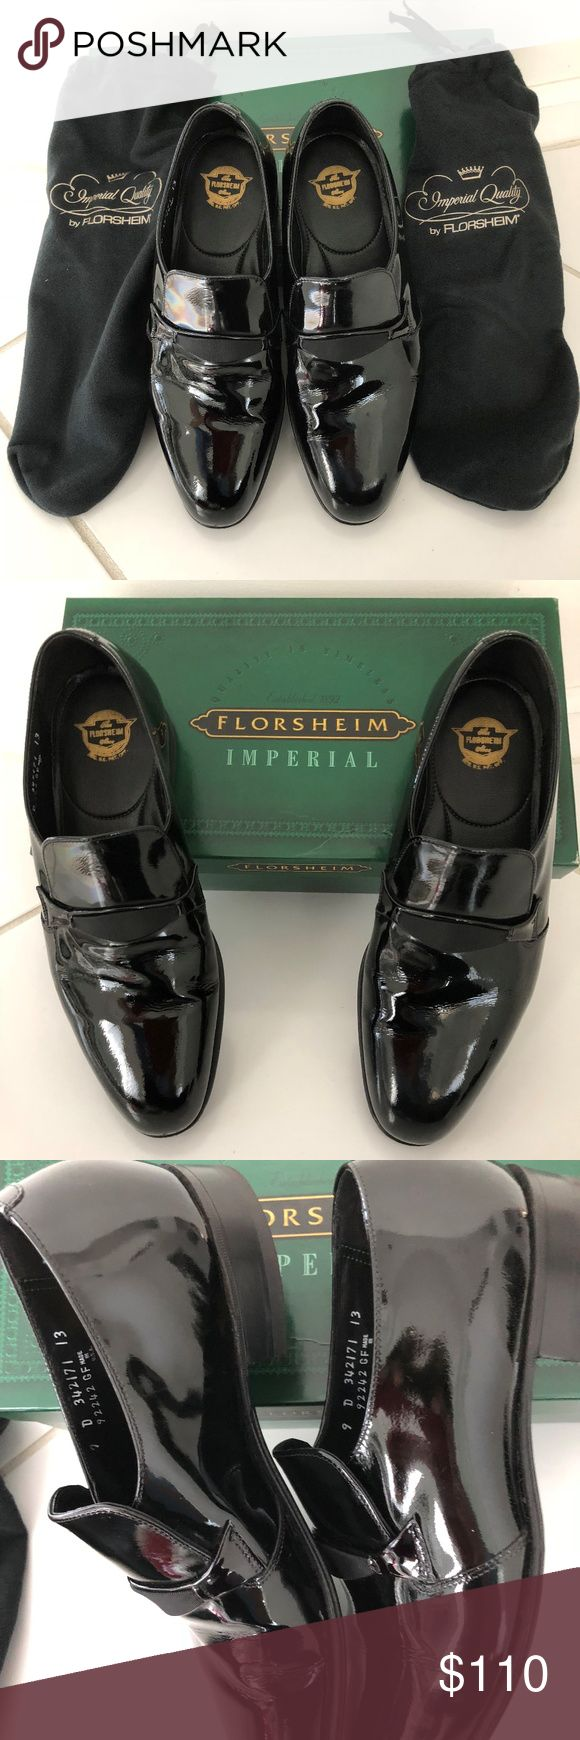 Florsheim Patent Leather Mens Tuxedo  Dress Shoes Mens Black Florsheim Black Patent Leather Tuxedo Dress Shoes.  Size 9D. Worn Once.   Excellent  Pre Loved Condition.  Has original shoe covers & box. Florsheim Shoes Loafers & Slip-Ons